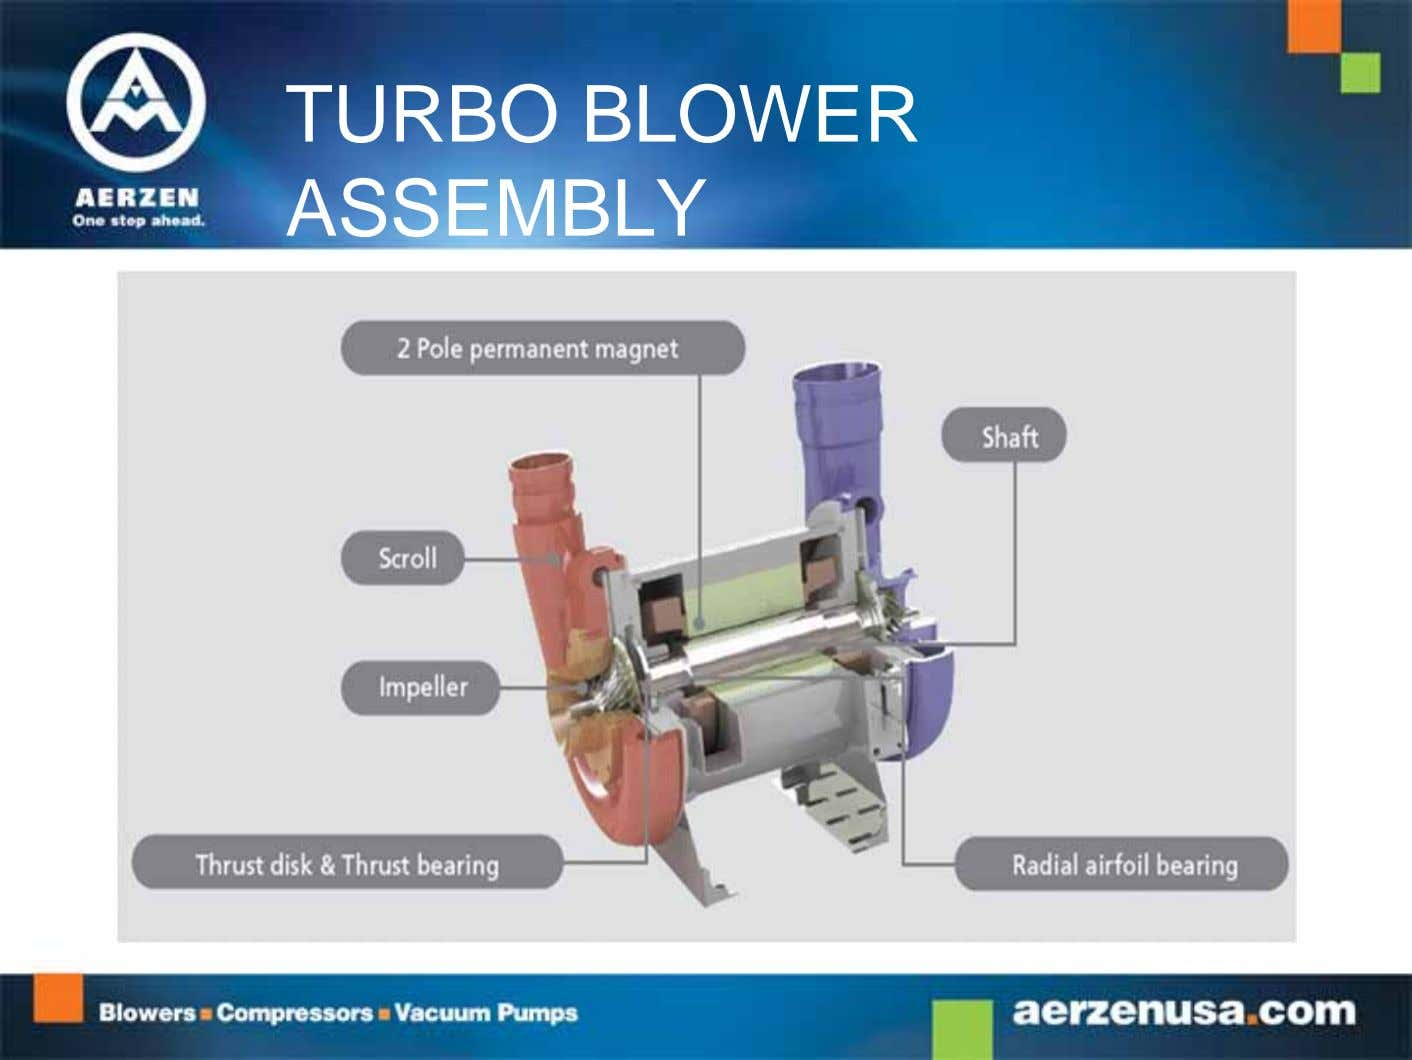 TURBO BLOWER ASSEMBLY